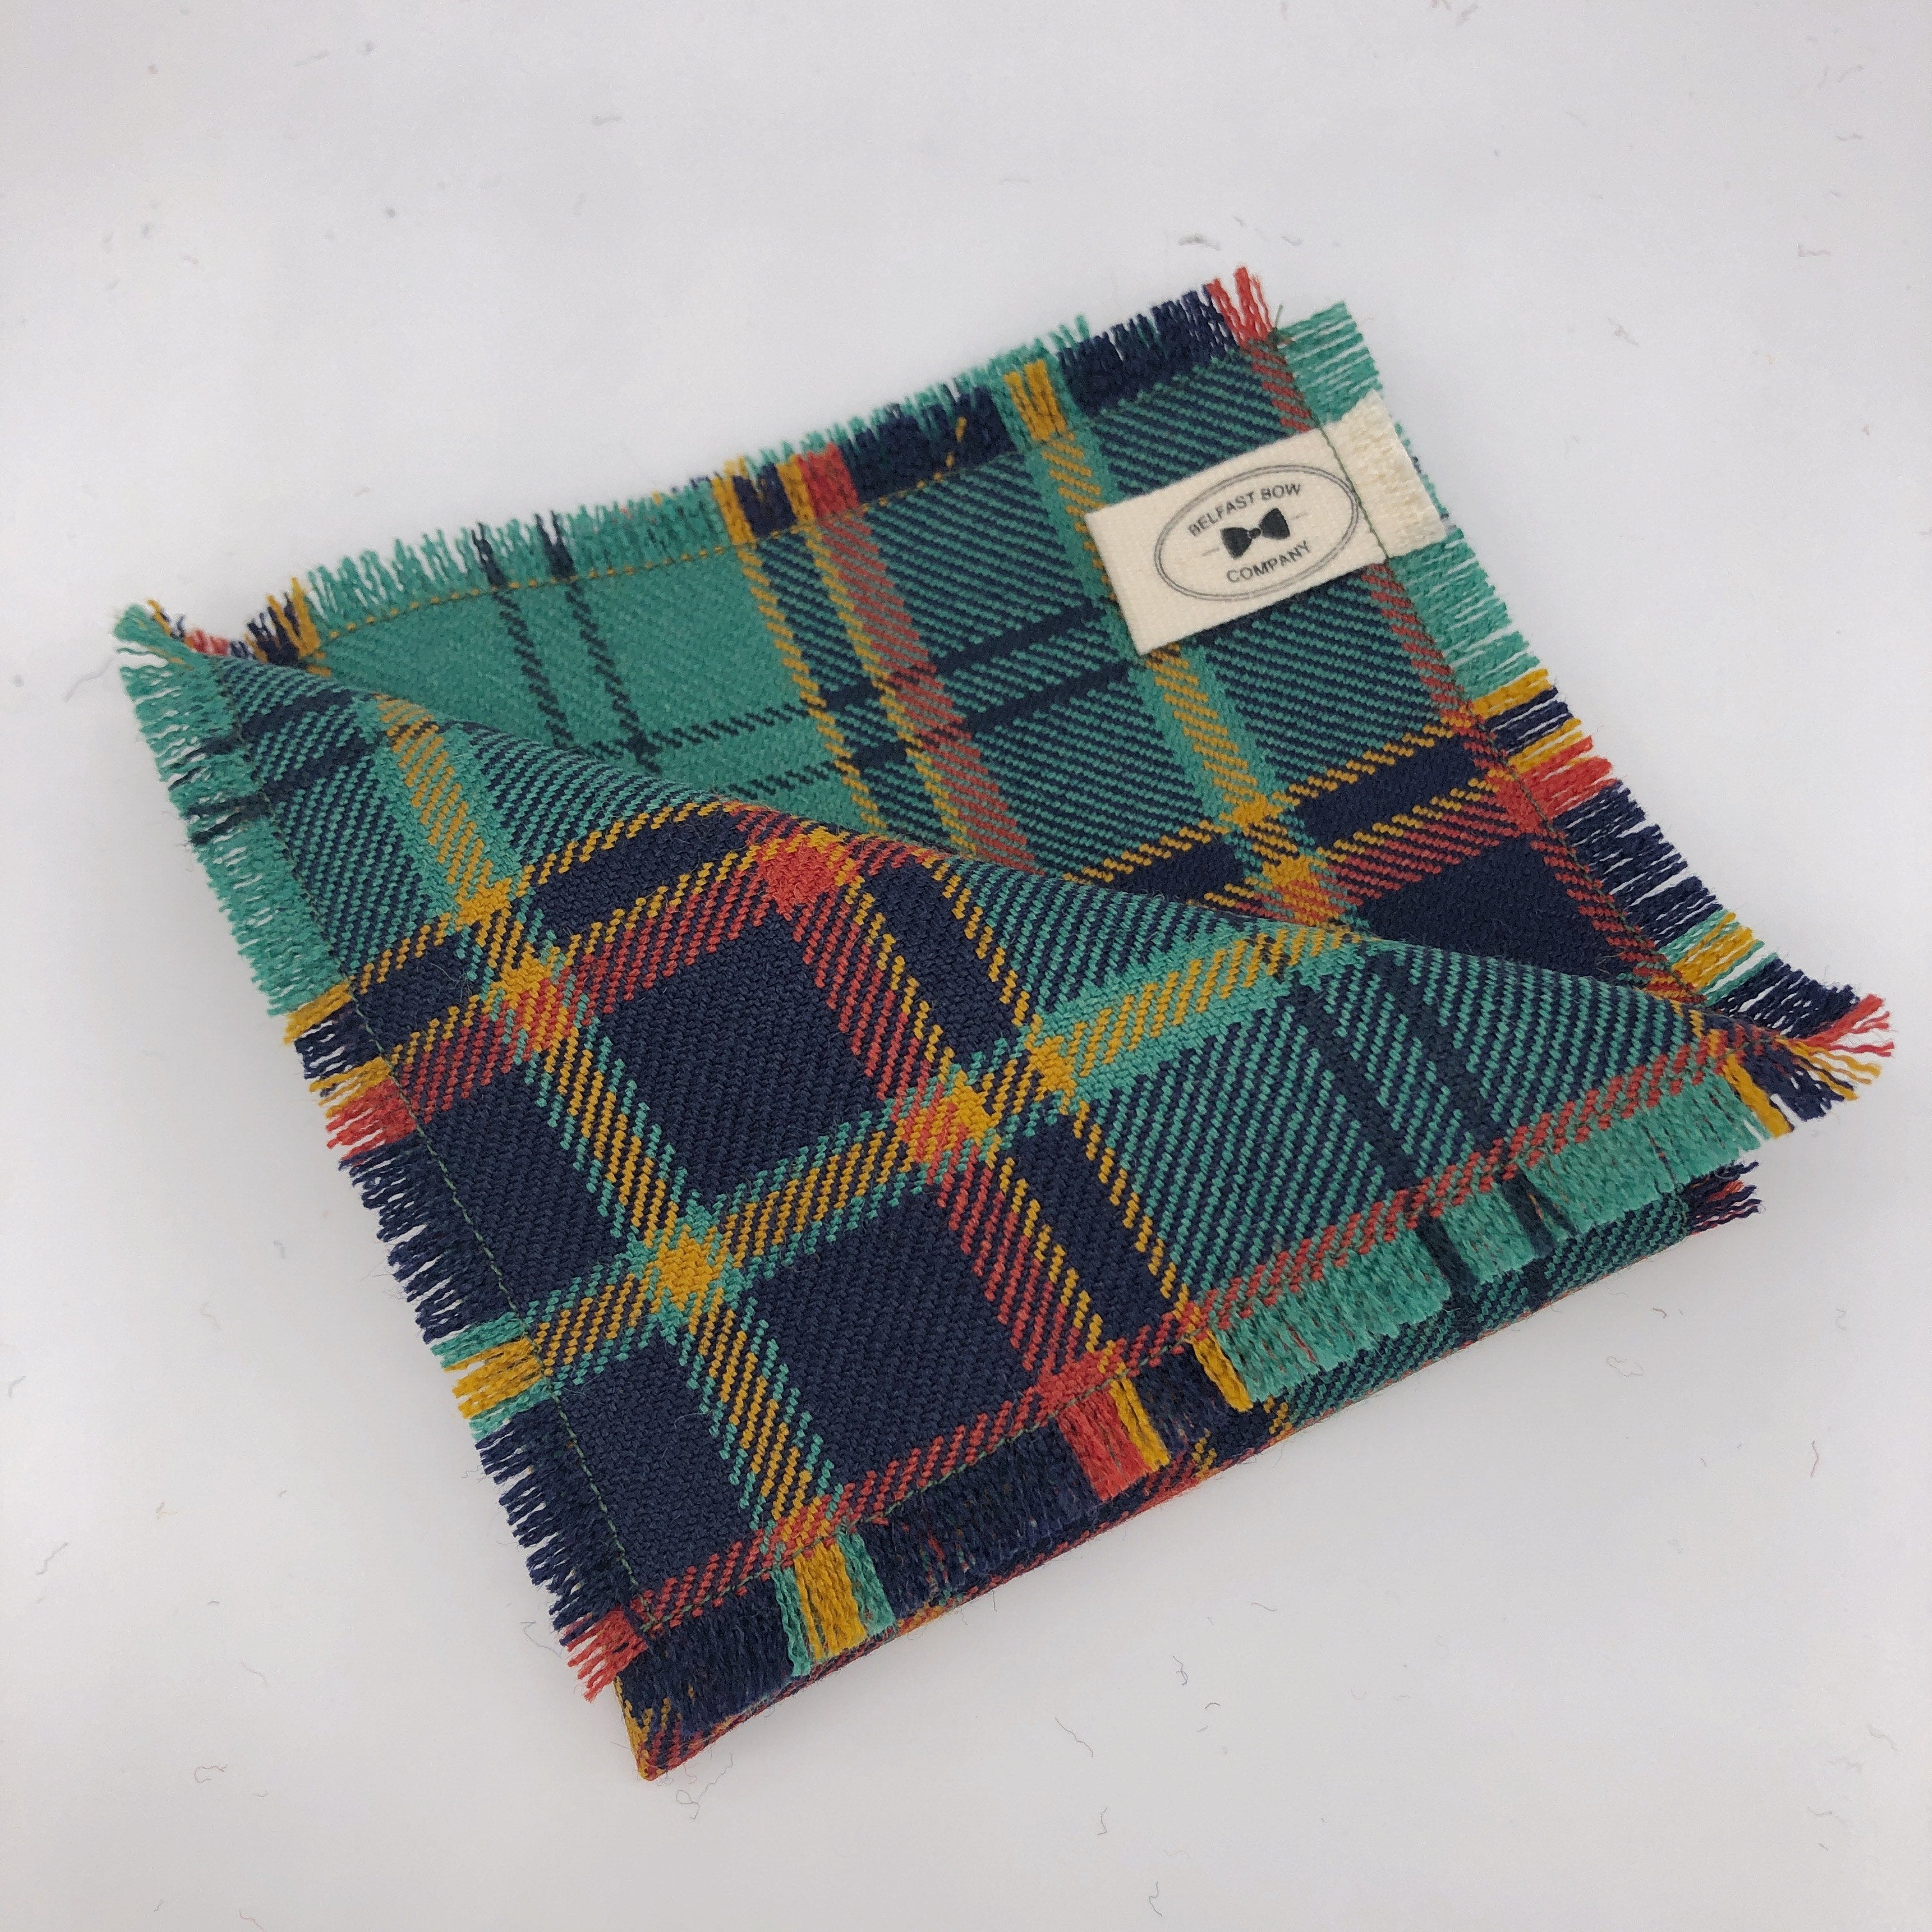 County Antrim Tartan Pocket Square by the Belfast Bow Company